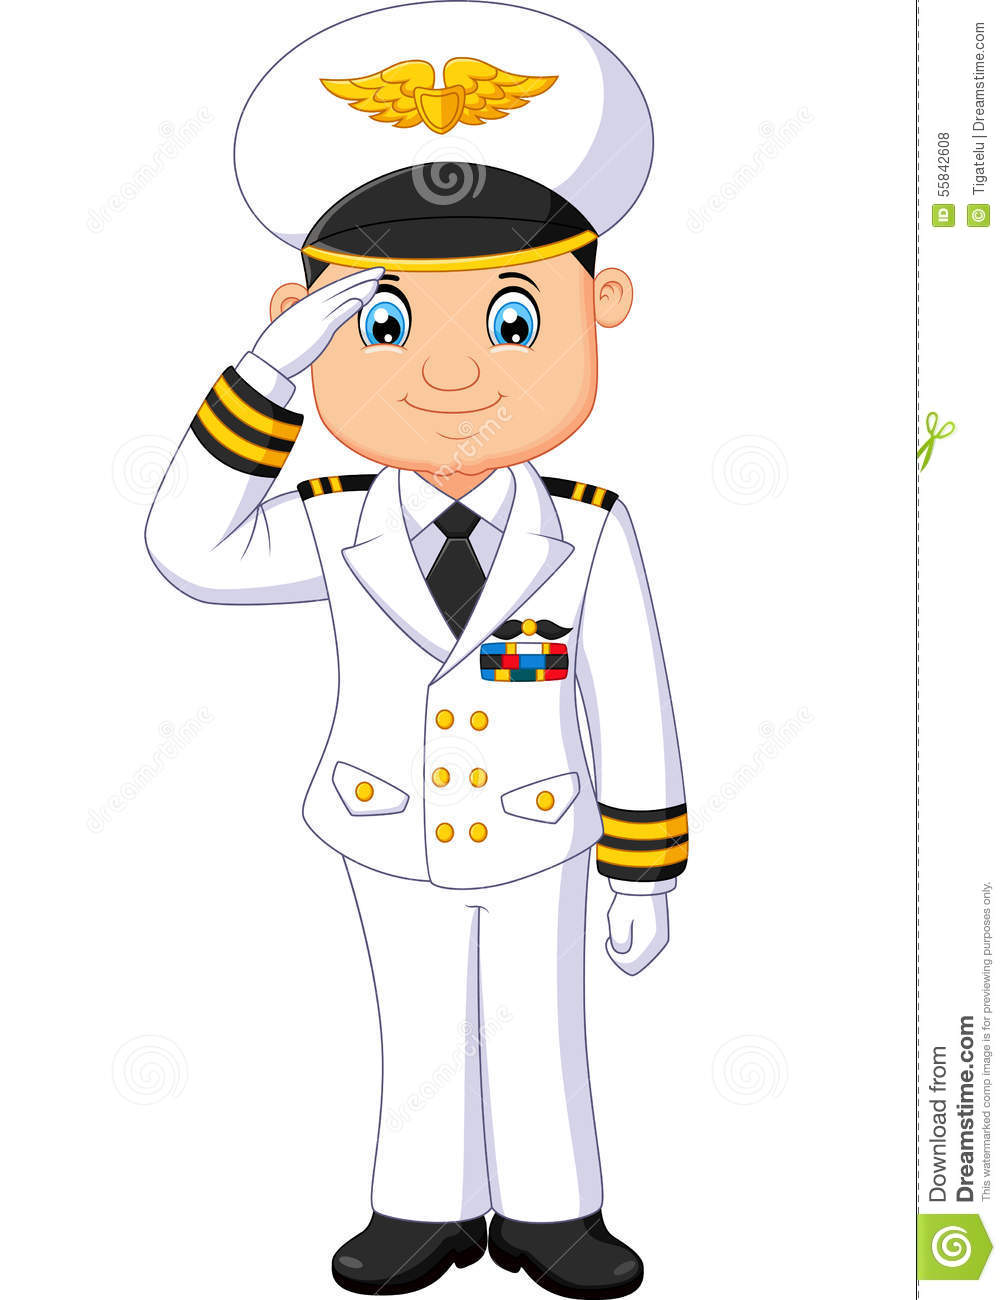 Cartoon Captain Respectful Stock Illustration - Image: 55842608